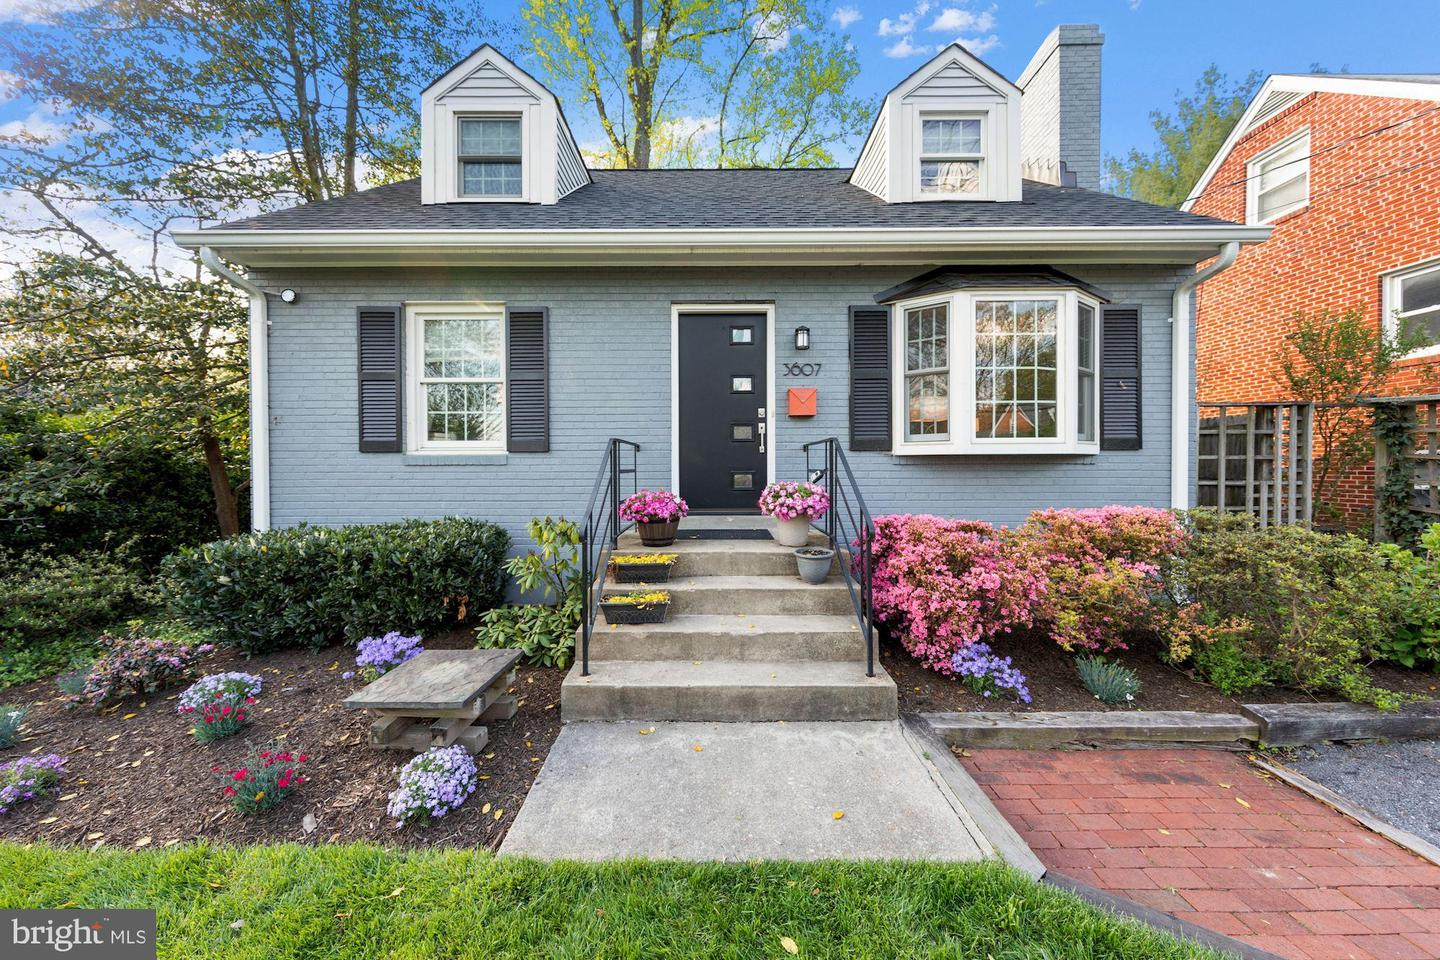 3607 WOODRIDGE AVE, SILVER SPRING, Maryland 20902, 3 Bedrooms Bedrooms, ,2 BathroomsBathrooms,Single Family,For Sale,3607 WOODRIDGE AVE,MDMC752946